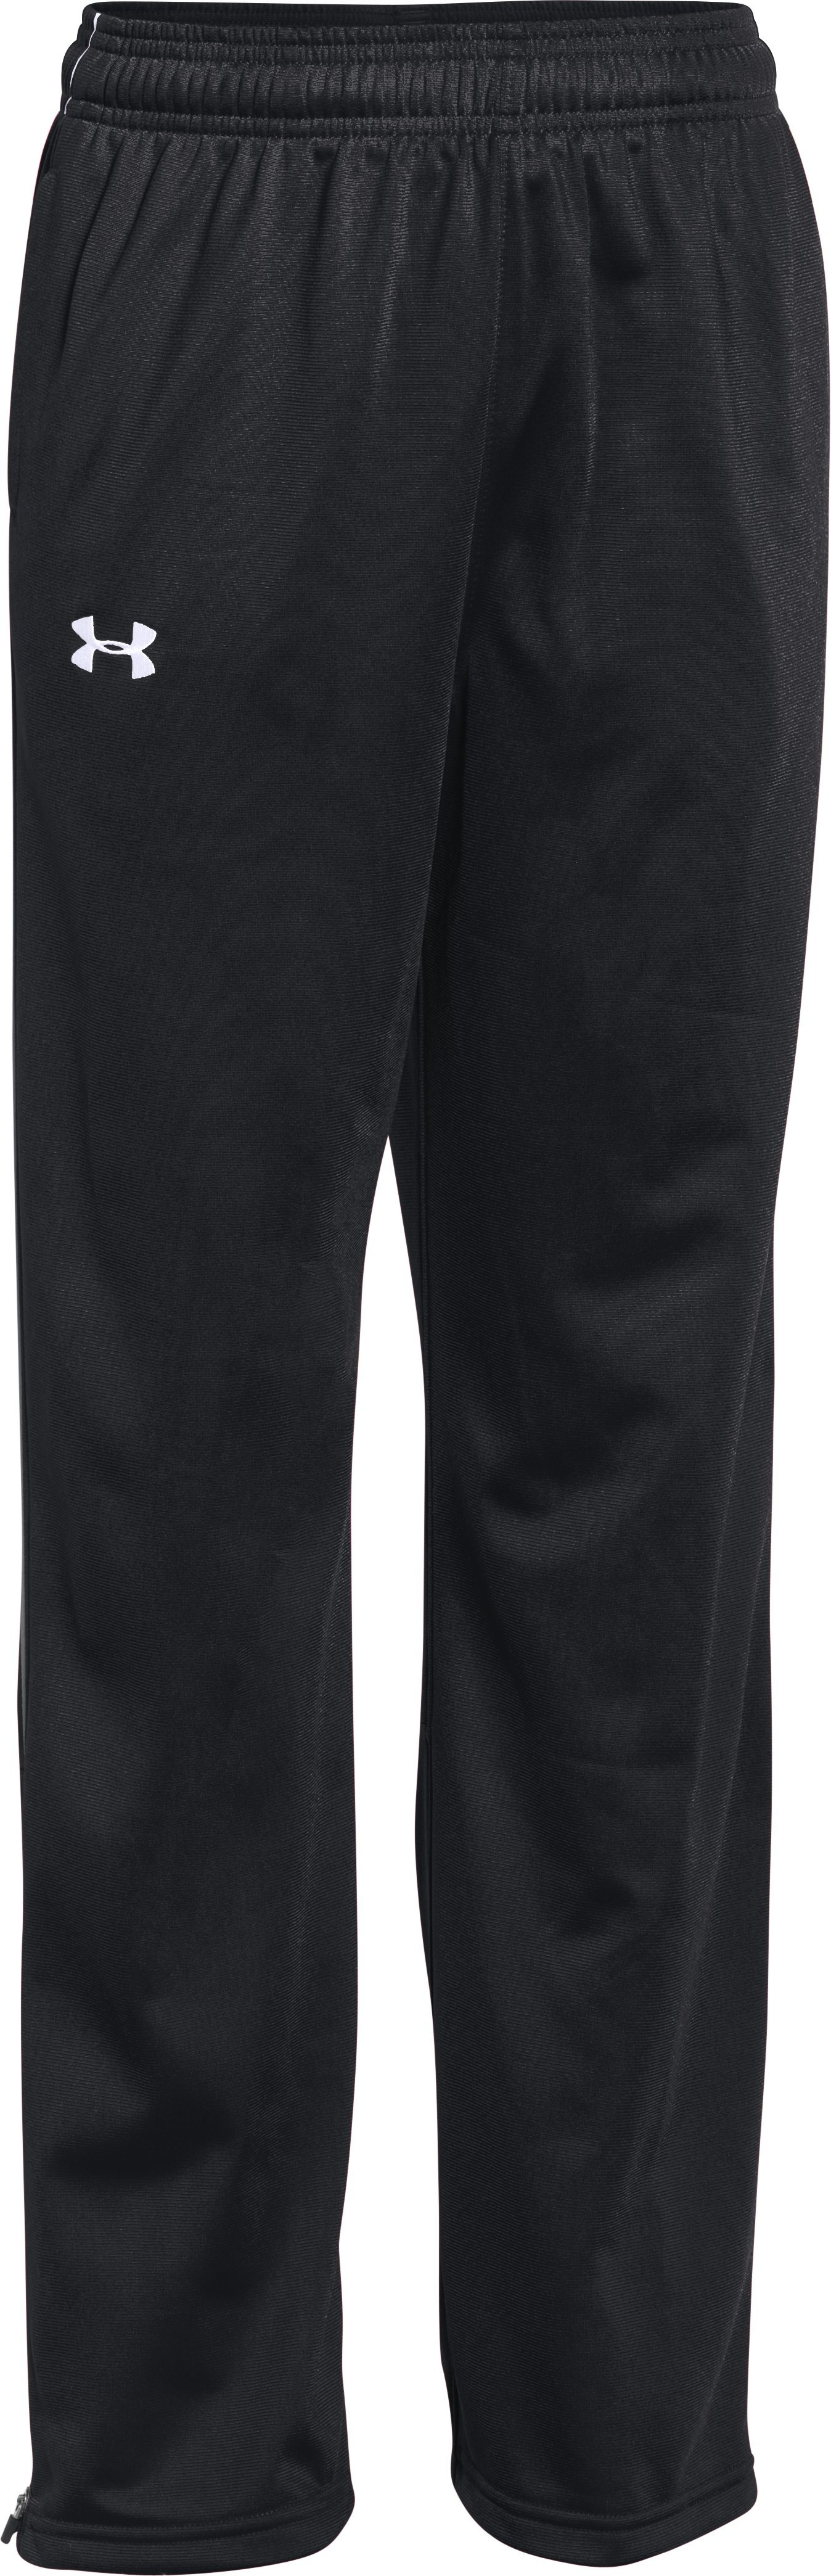 Boys' UA Rival Knit Warm Up Pants, Black